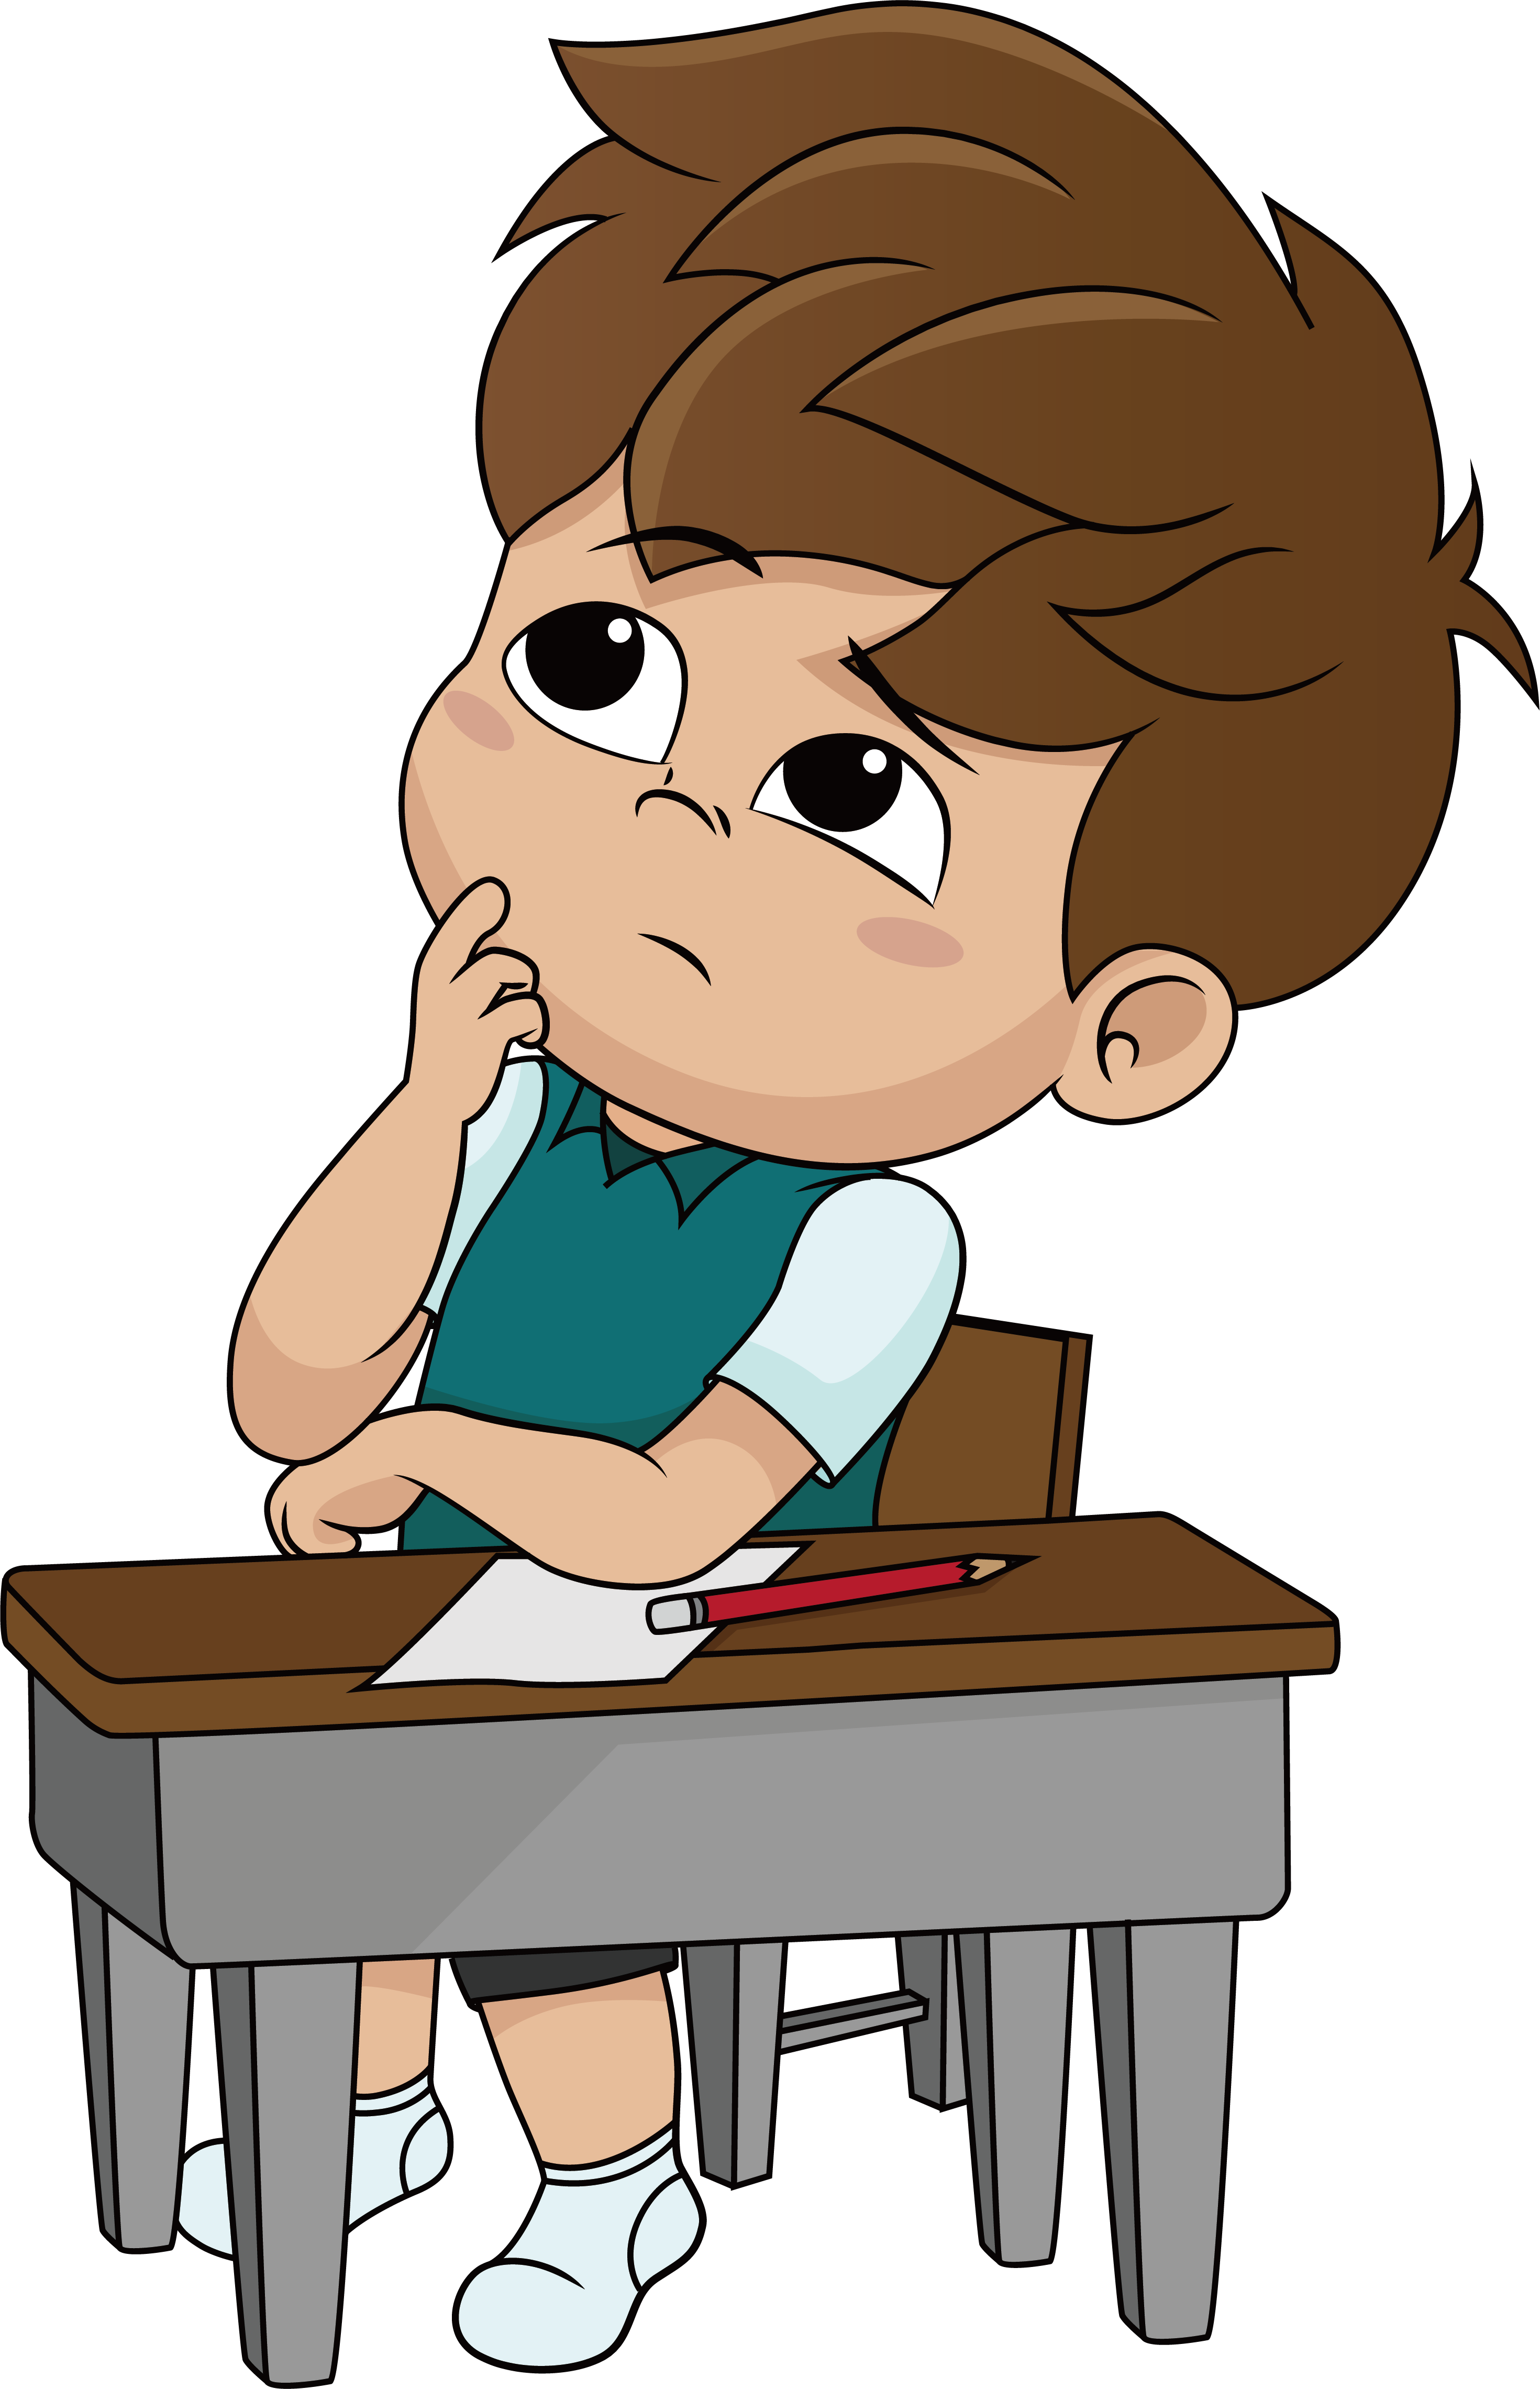 Thoughts clipart final thought. Royalty free illustration a